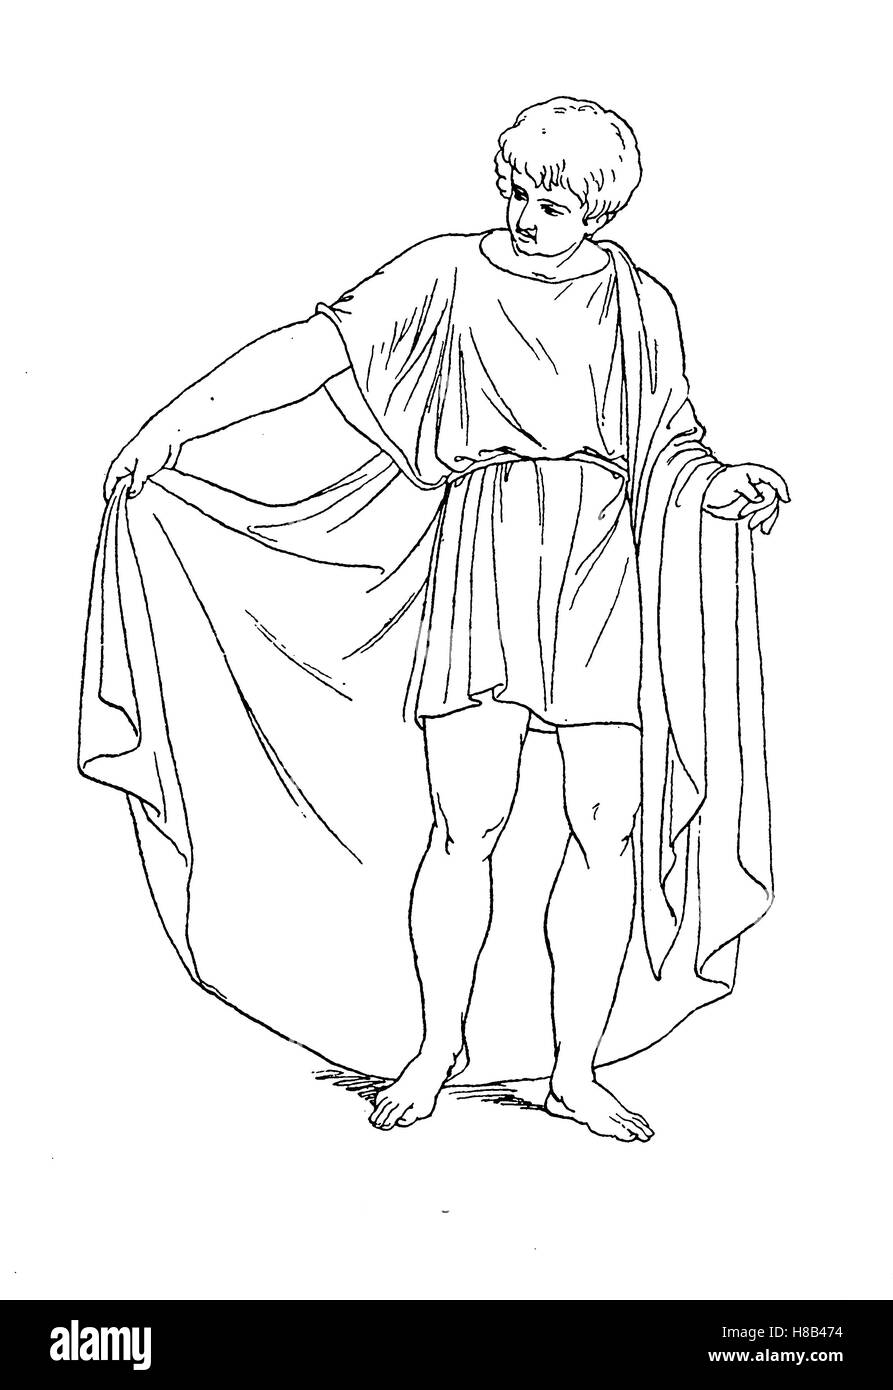 Greece, man's costume, short Chiton and Himation, History of fashion, costume story - Stock Image